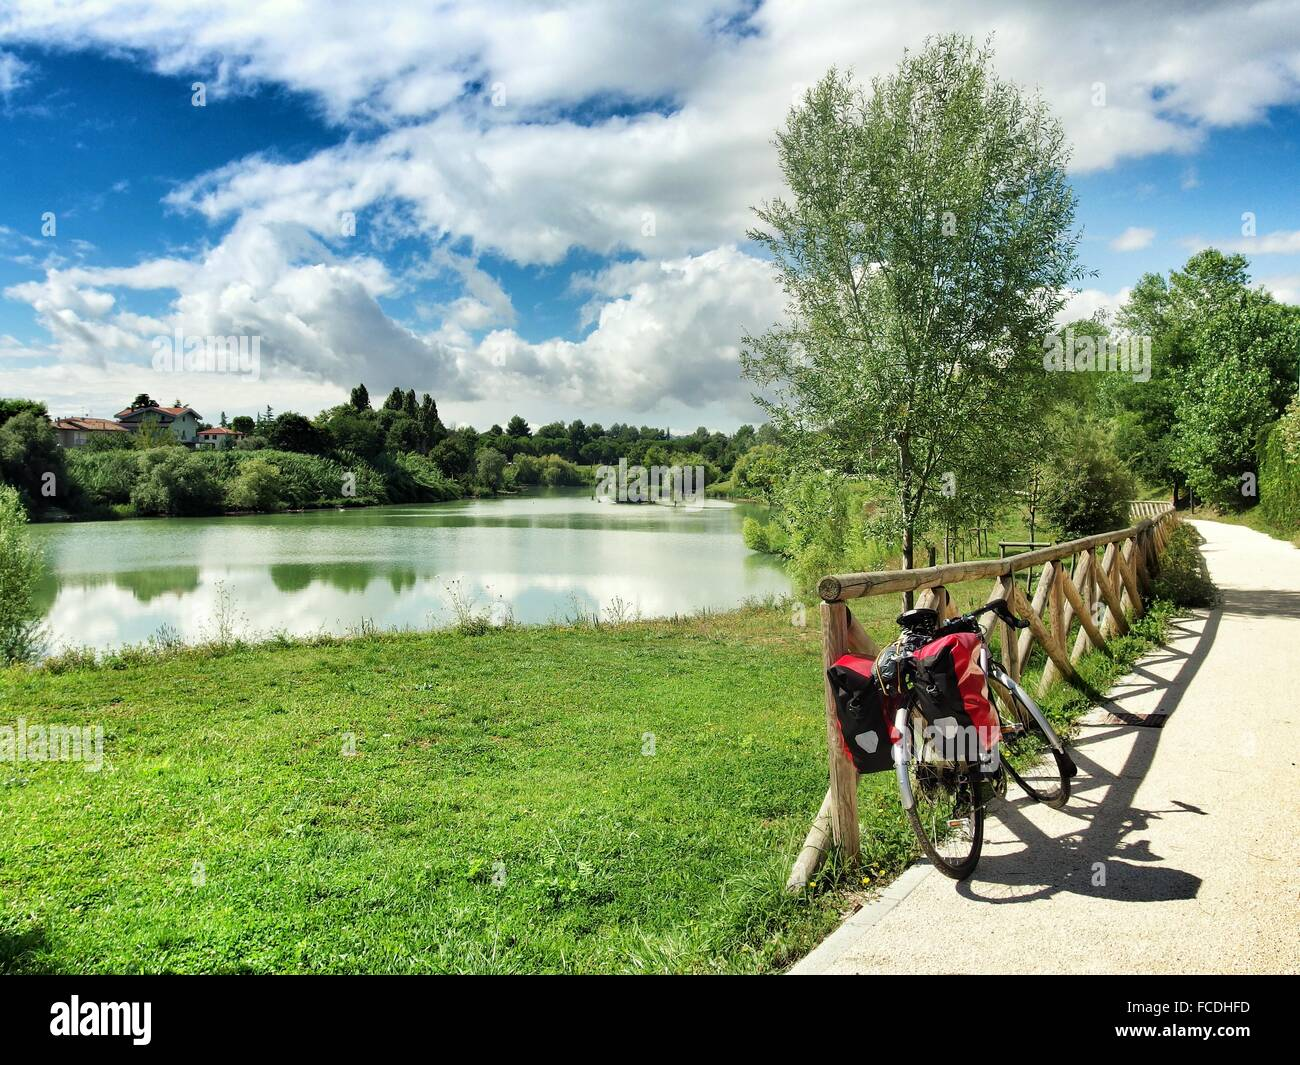 Bicycle Parked On Footpath By Lake Against Cloudy Sky Stock Photo